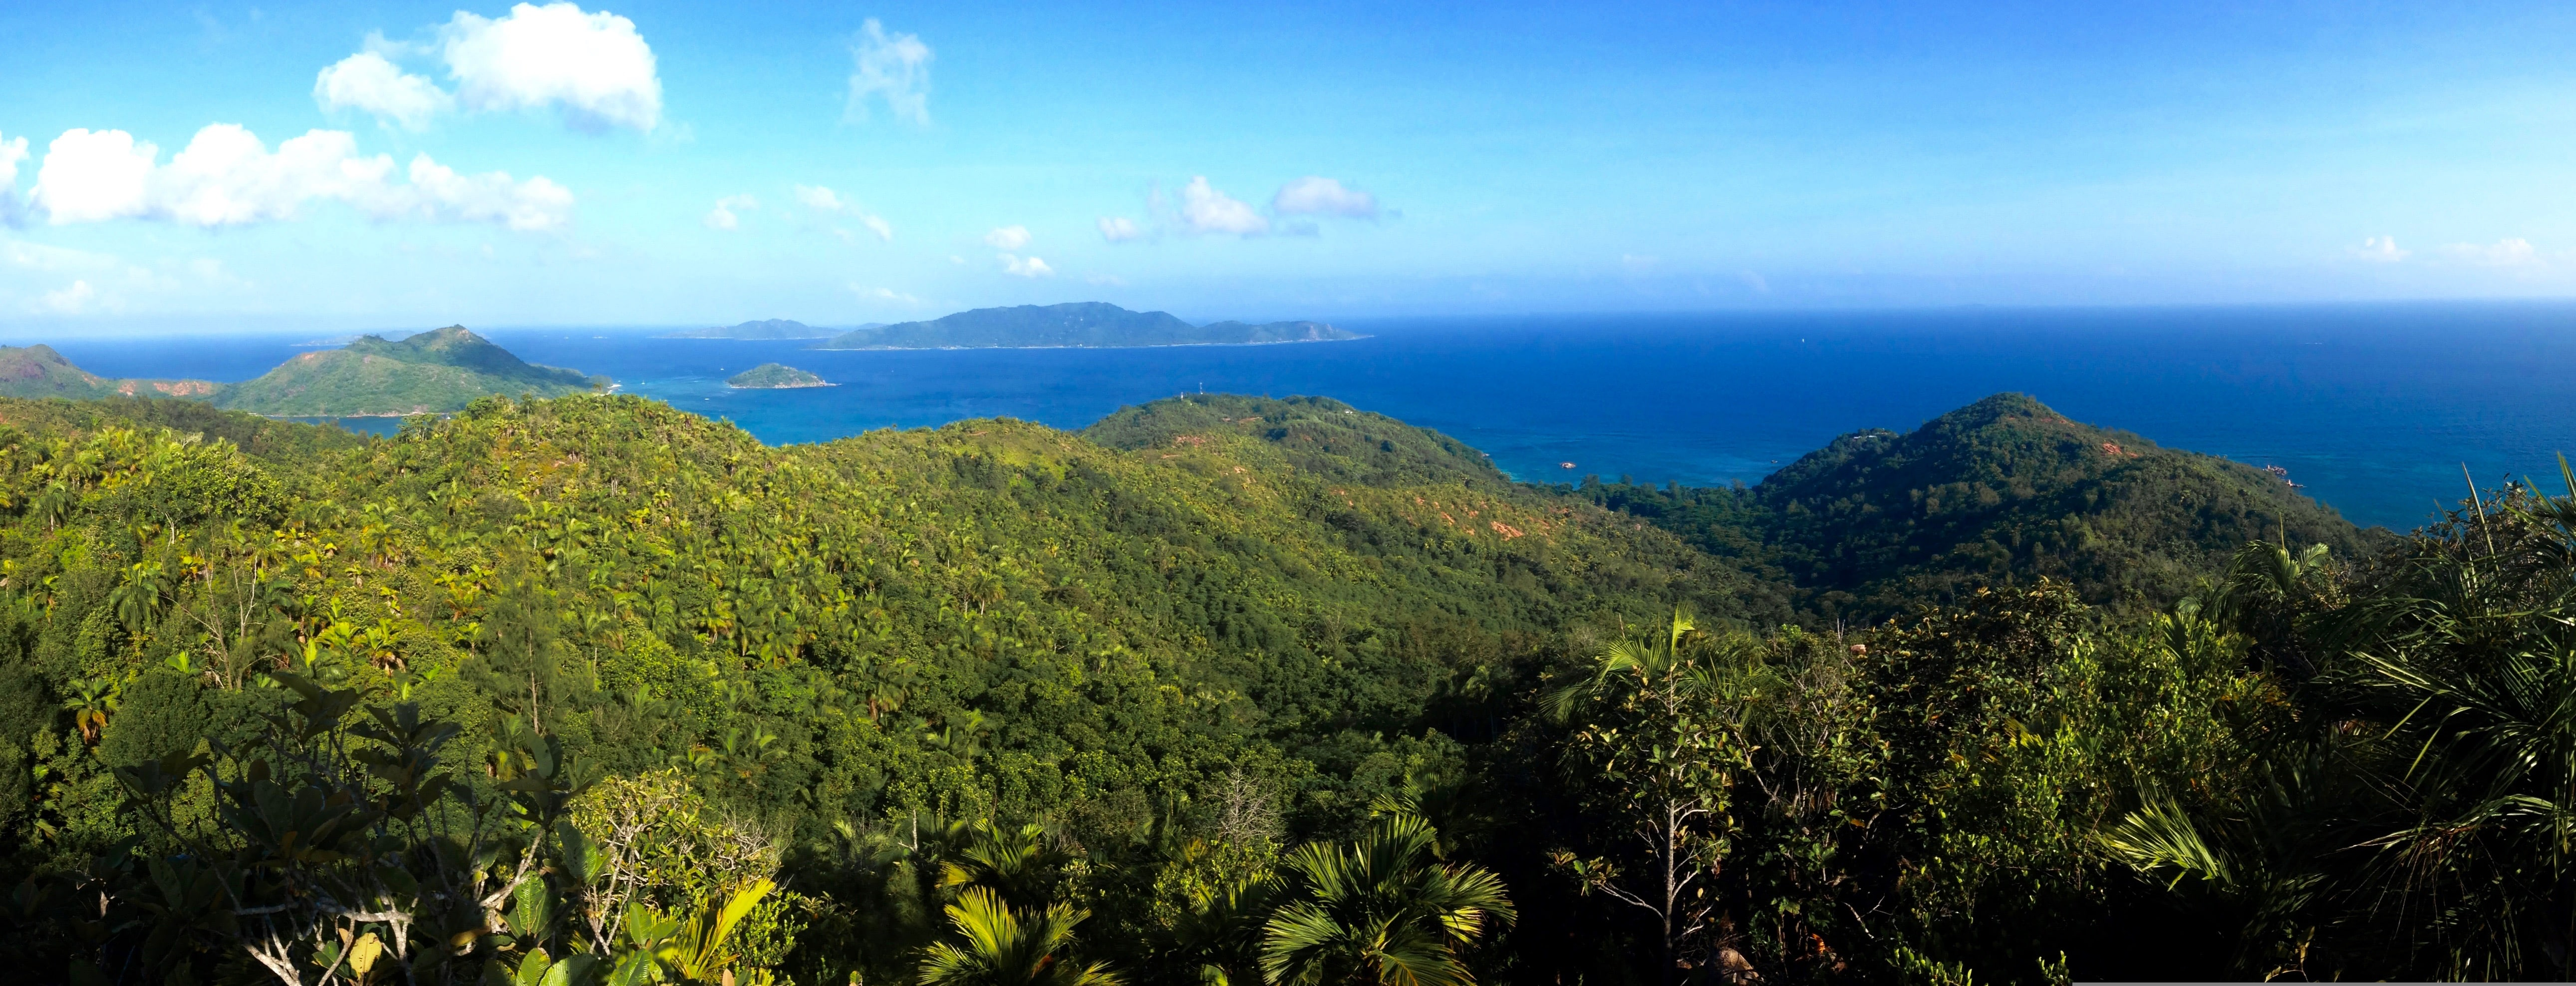 Stunning views across praslin and beyond. |©oliver quinlan